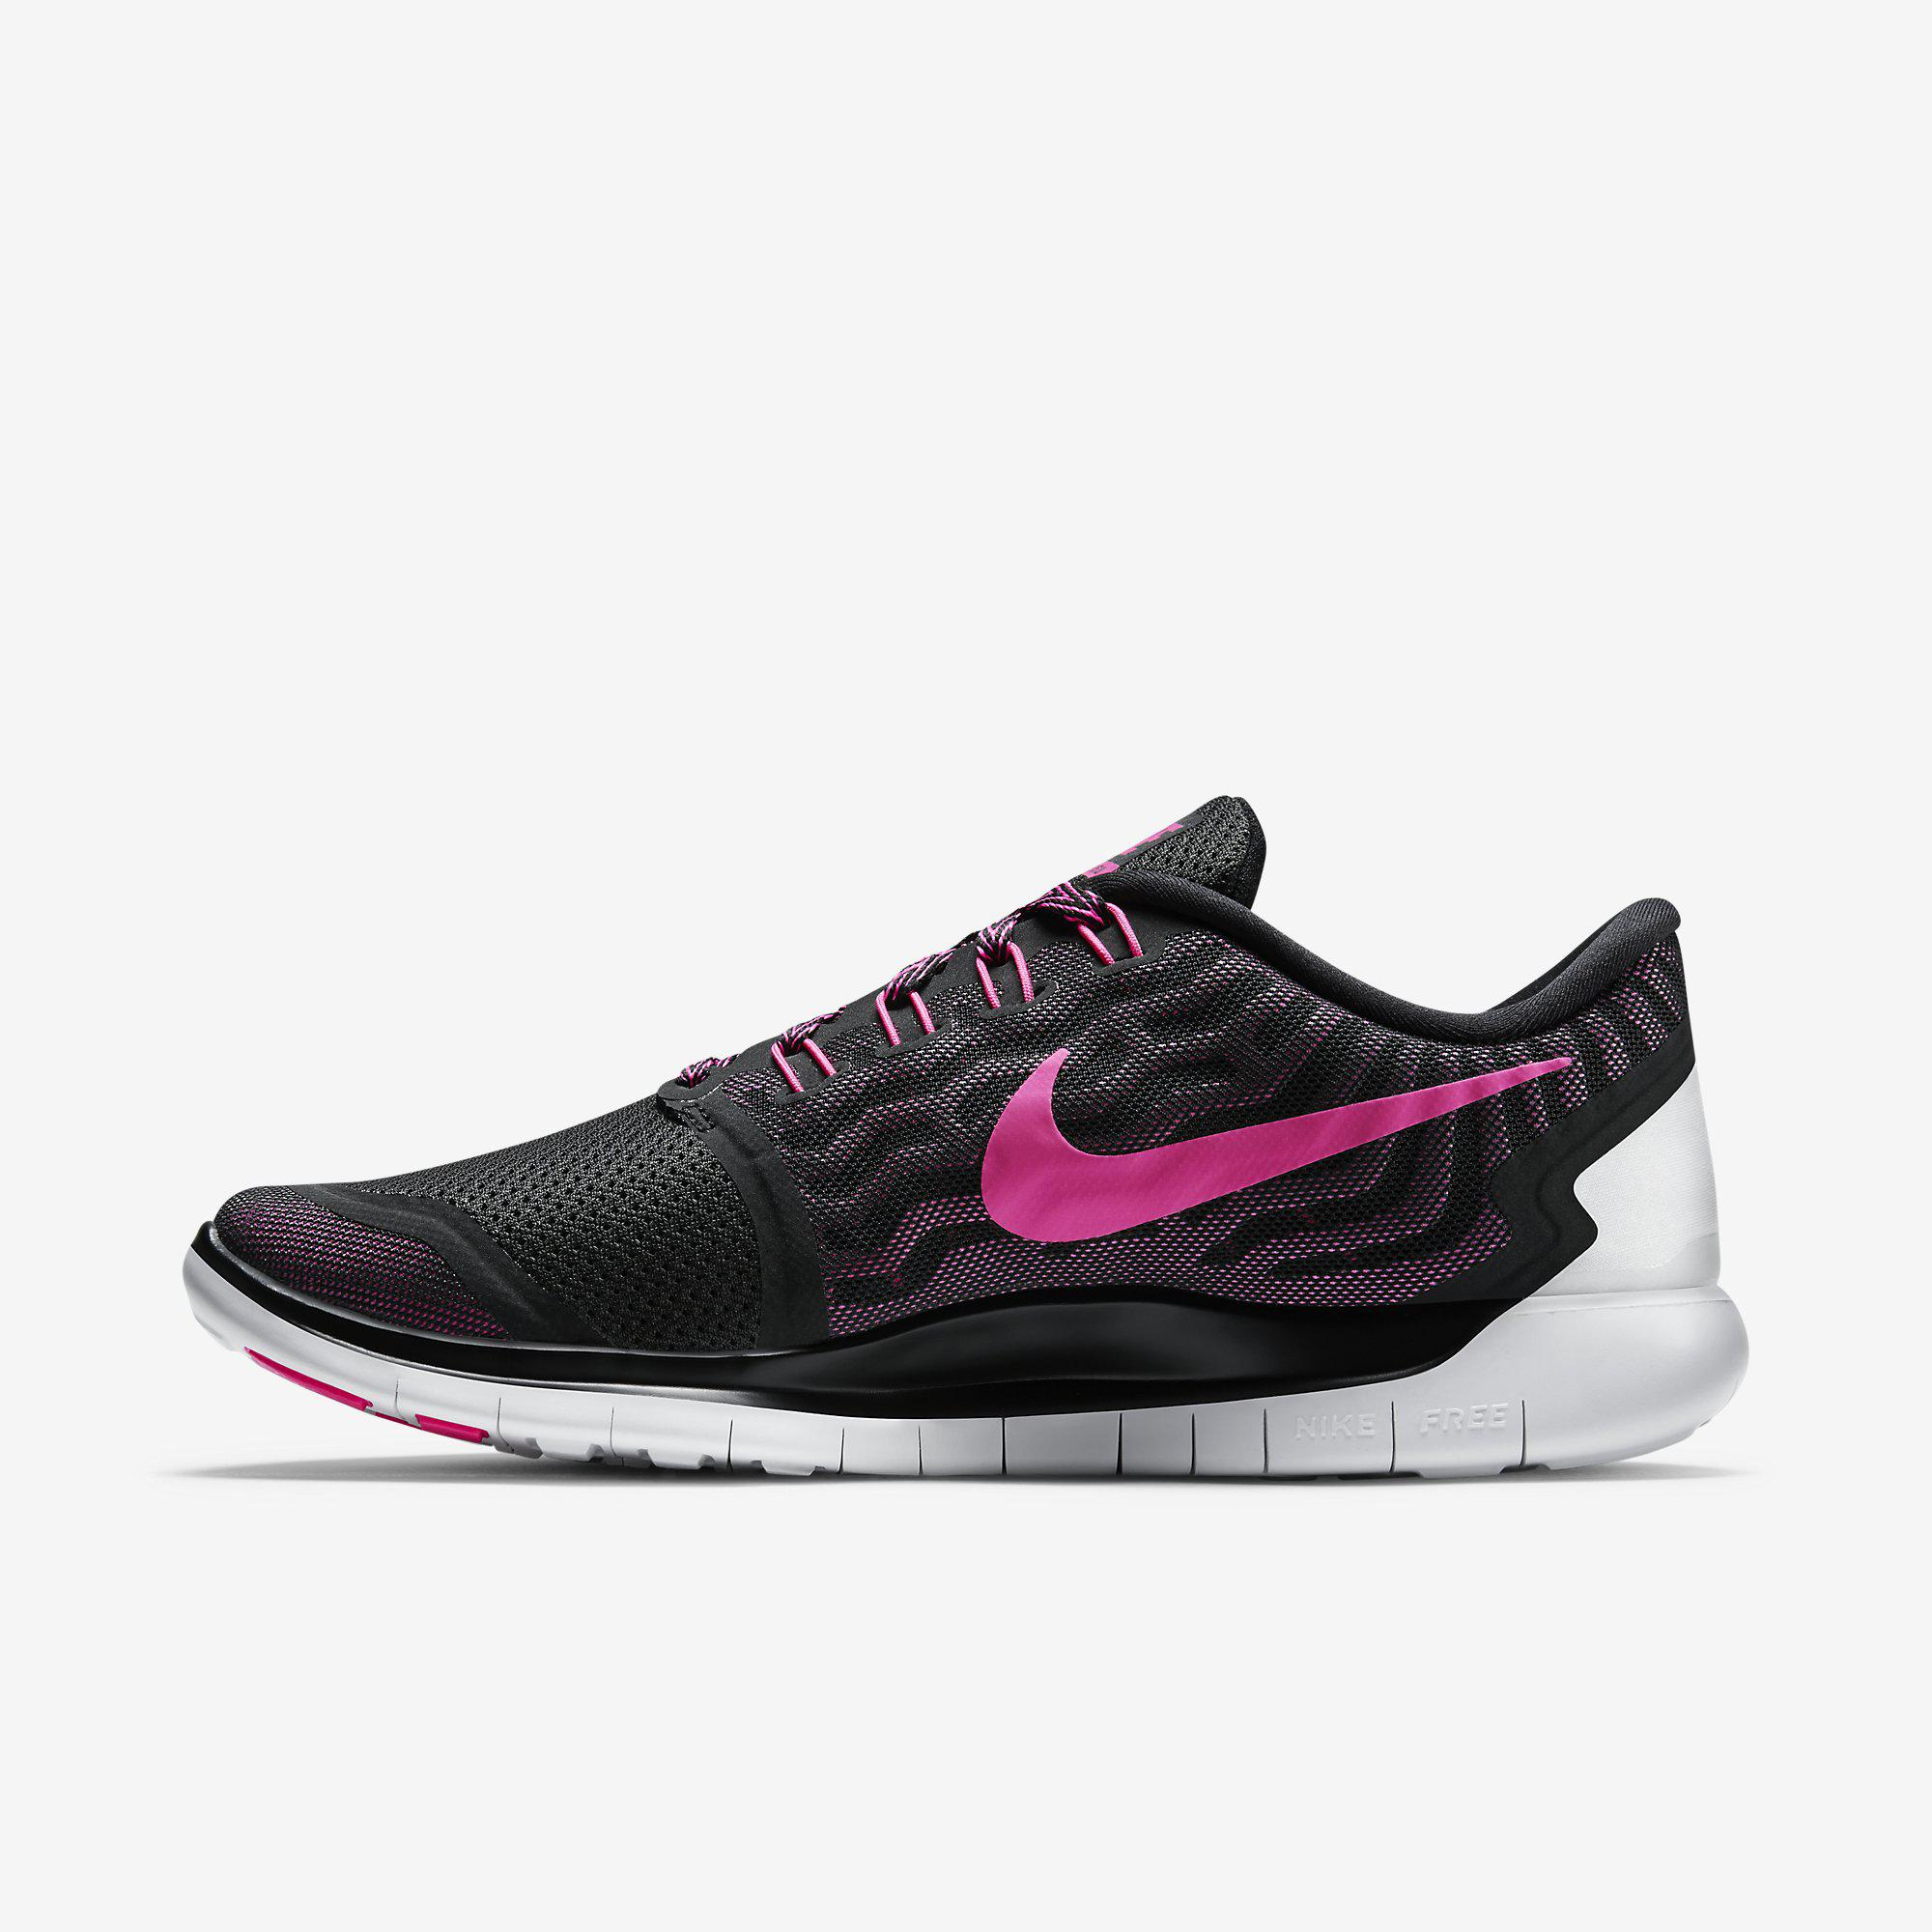 official photos 8122f 8999d Nike Womens Free 5.0+ Running Shoes - Black Pink